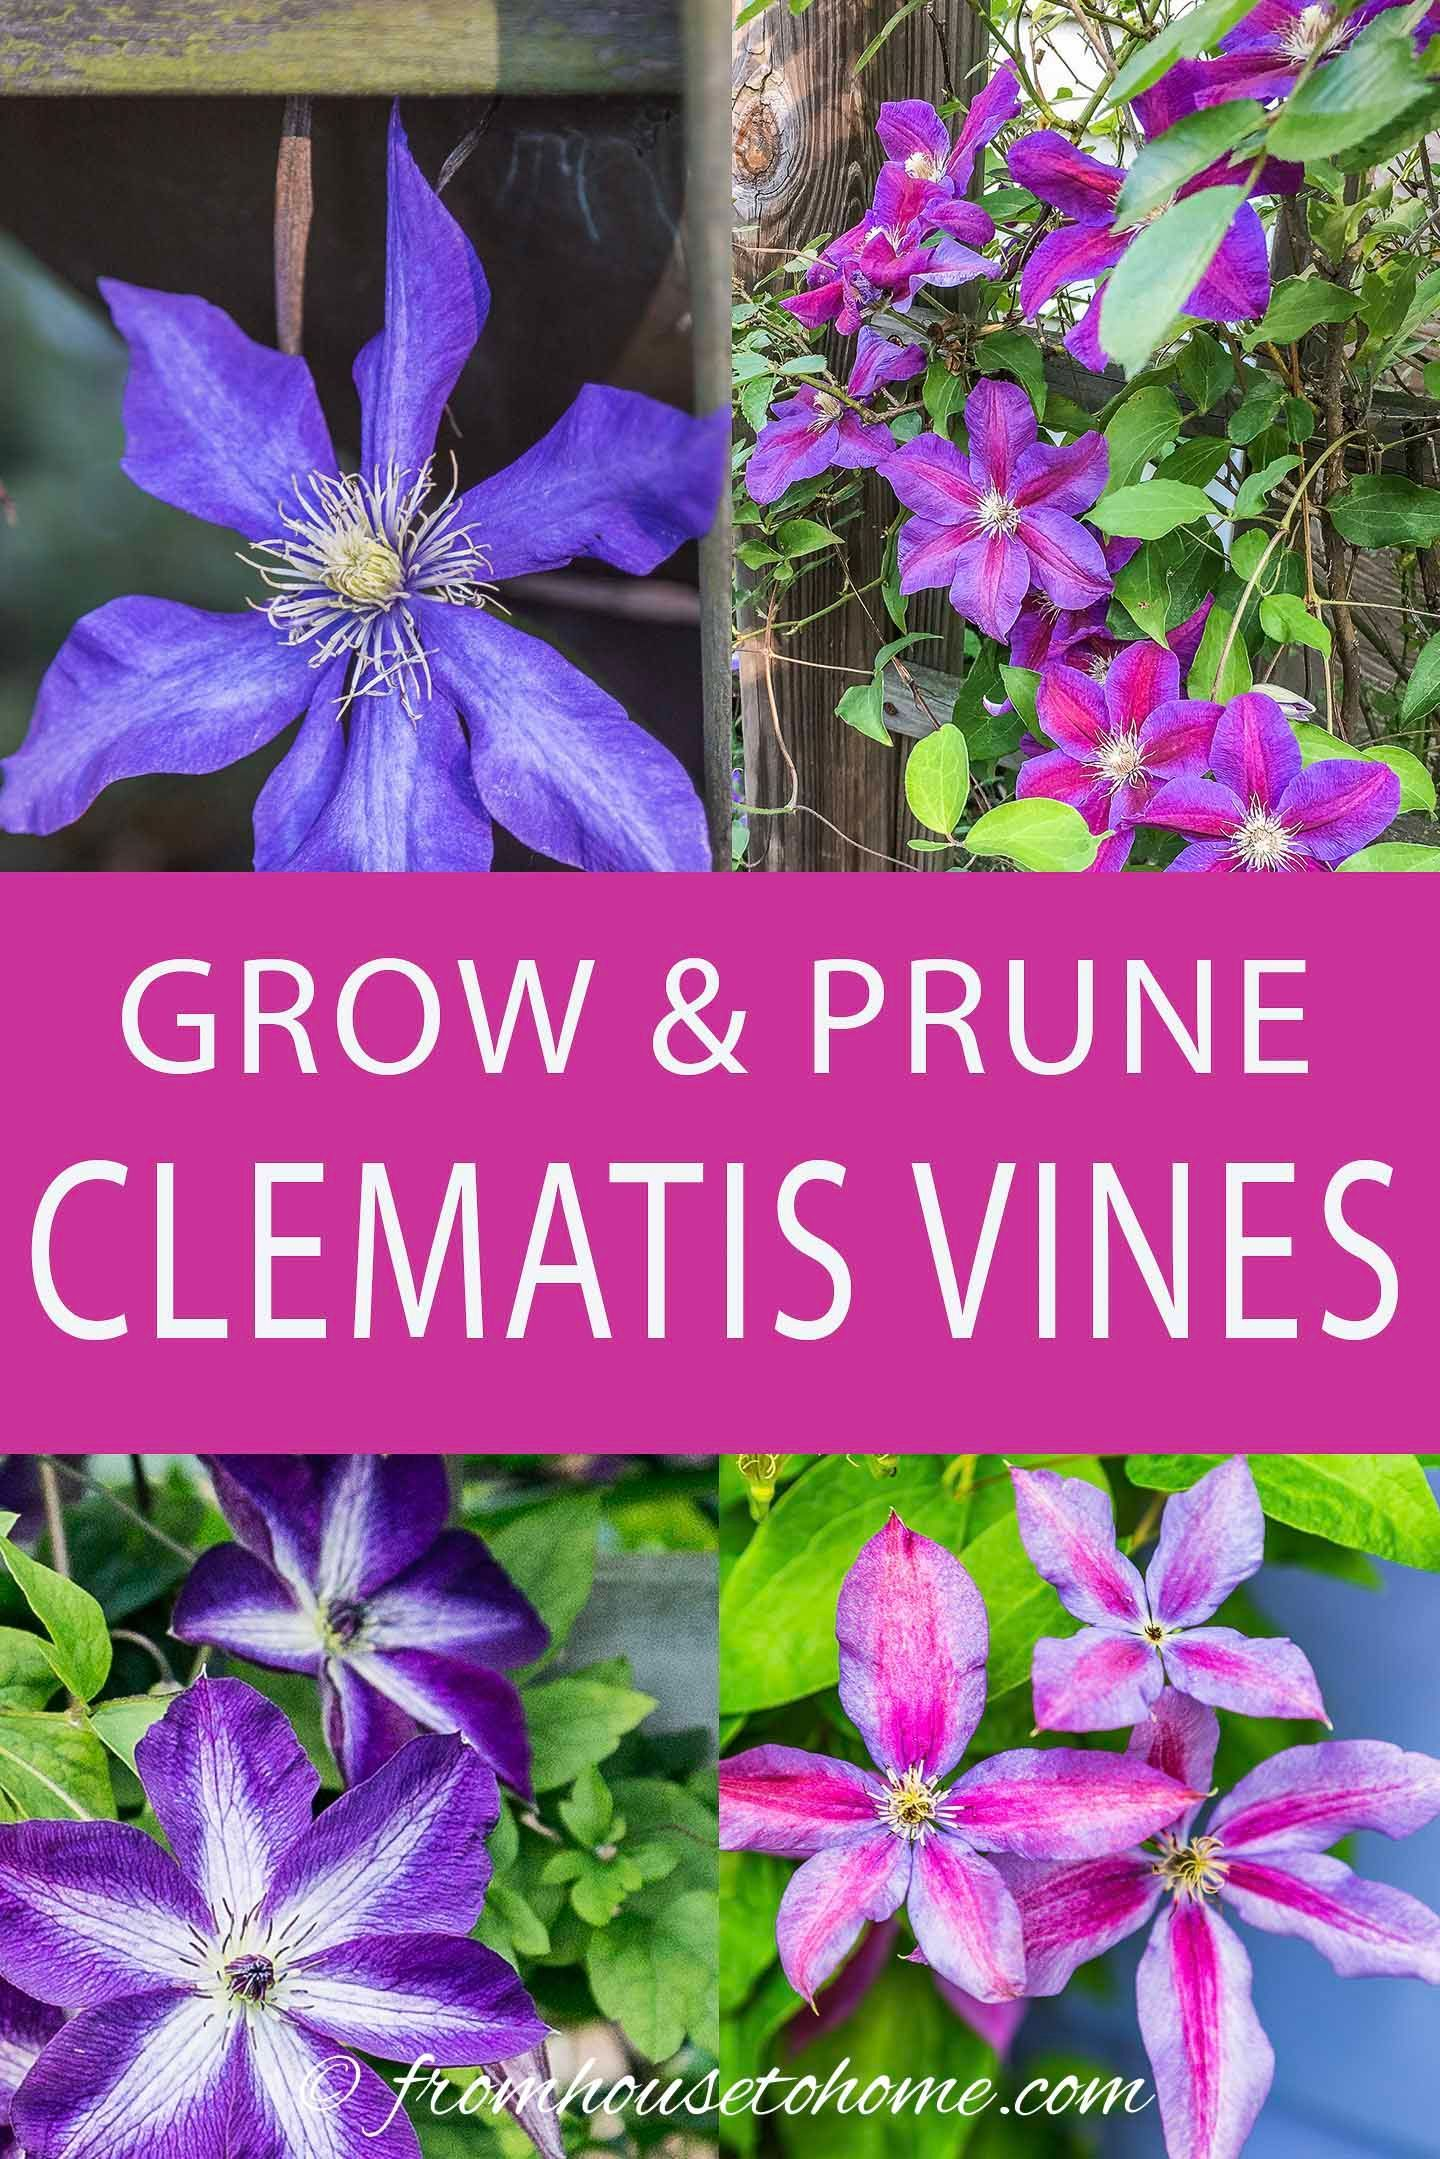 Clematis Care The Ultimate Guide To Growing and Pruning Clematis is part of Clematis care, Climbing flowers, Clematis, Clematis plants, Flower garden, Garden vines - Learn how to prune and grow Clematis to produce big, beautiful flowers with this Clematis care guide that has all of the information you need